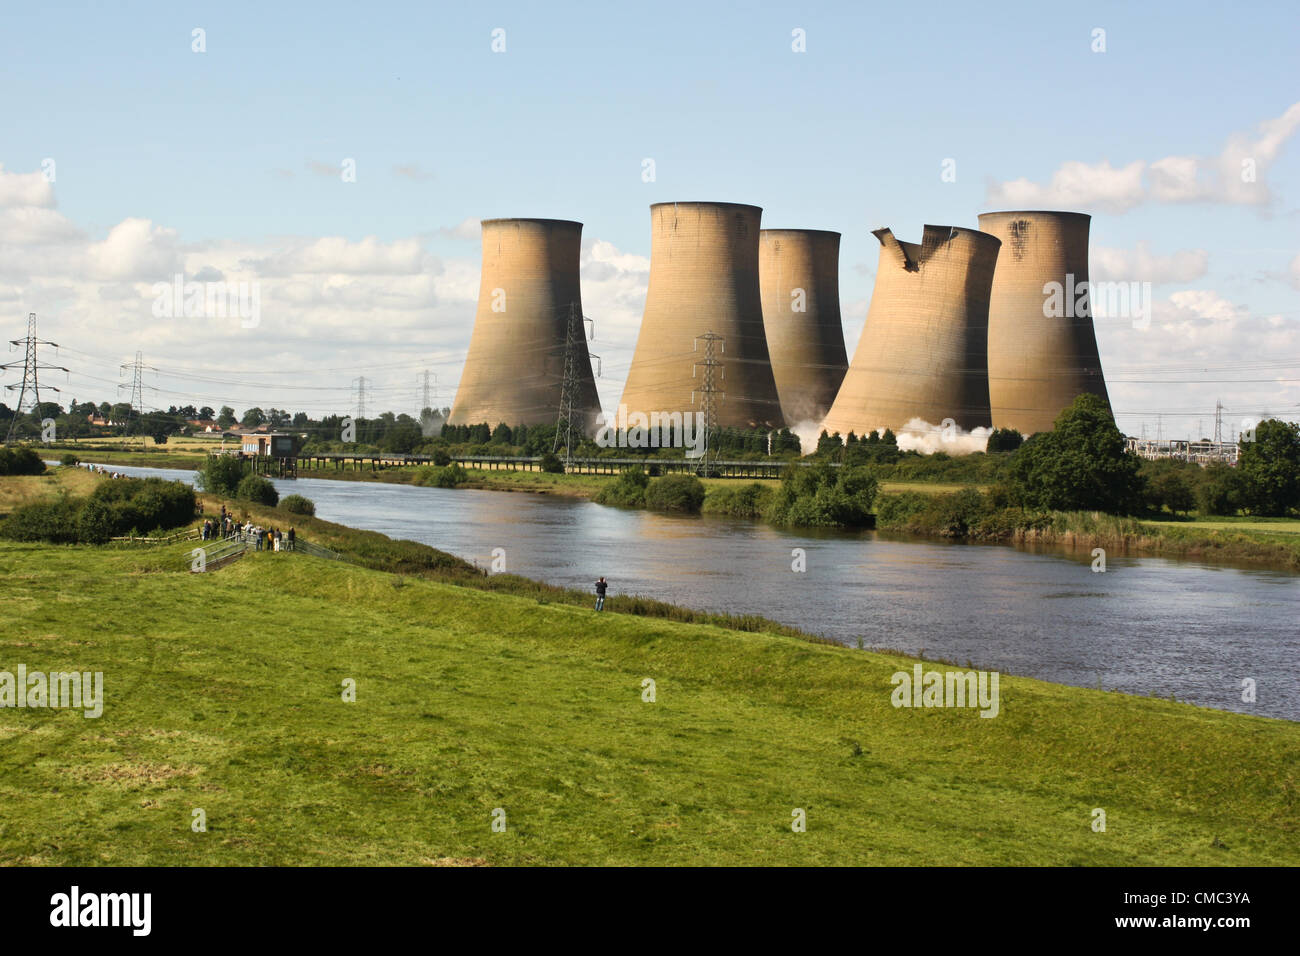 The first cooling tower begins to collapse in the demolition process at High Marnham, Nottinghamshire, UK, at 10am - Stock Image